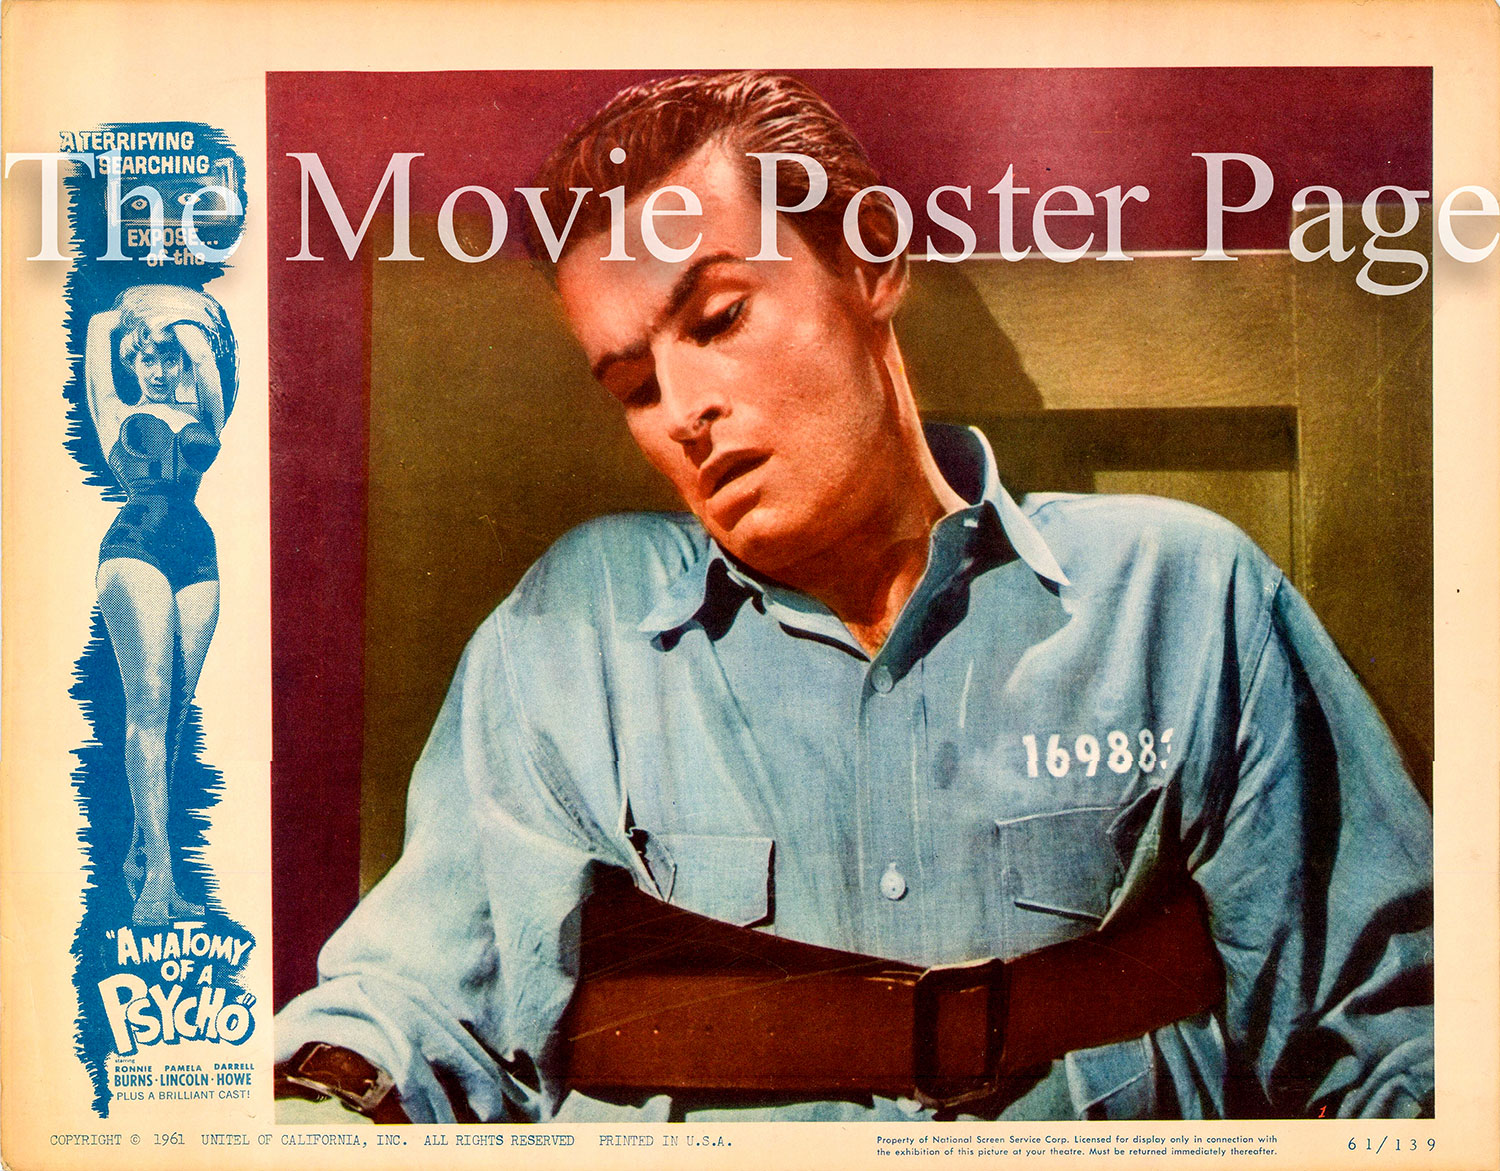 Pictured is a US lobby card for the 1961 Boris Petroff film Anatomy of a Psycho starring Ronnie Burns.